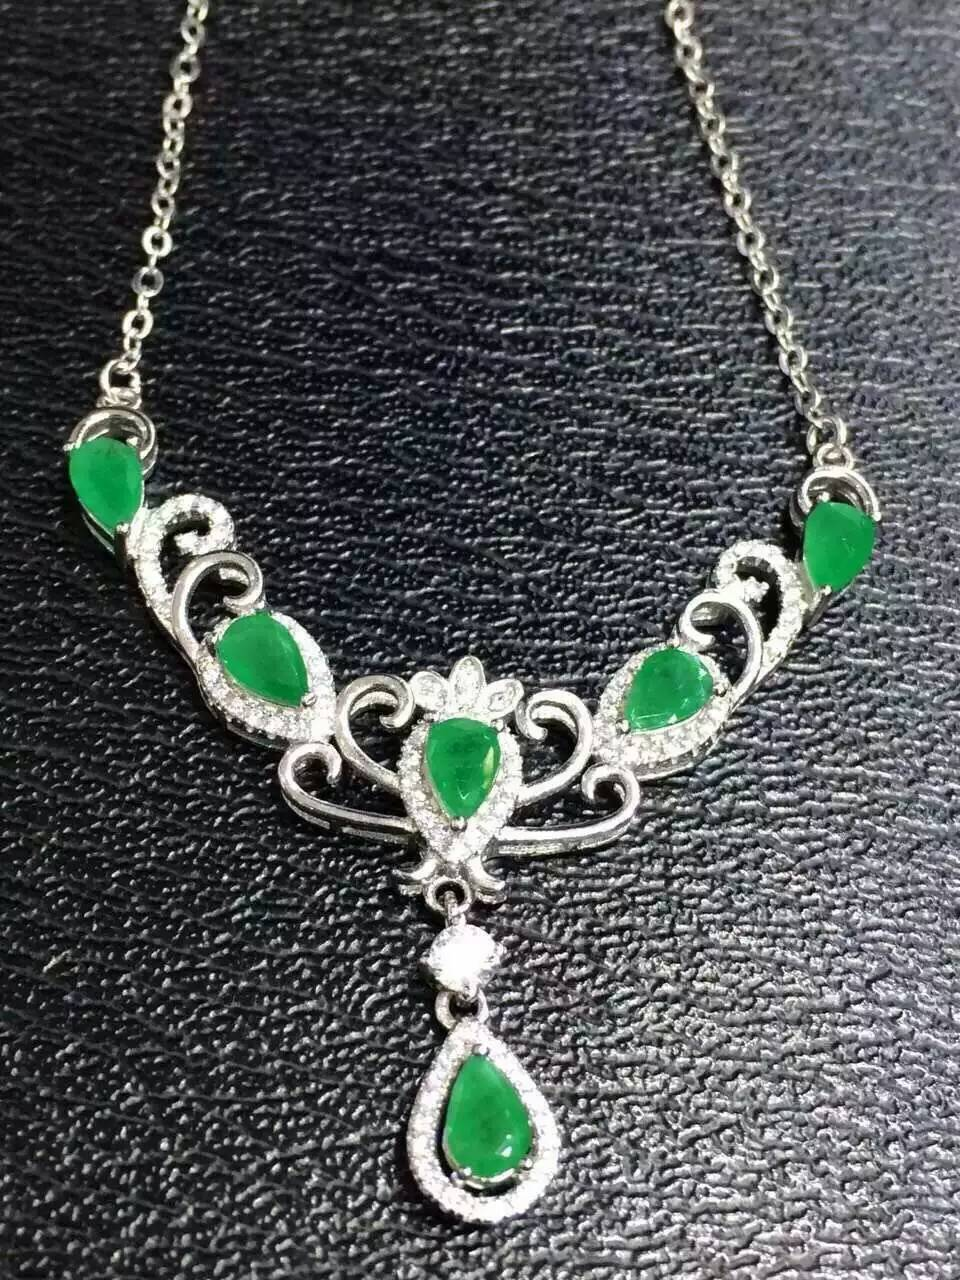 Natural green emerald Necklace Natural Gemstone Pendant Necklace 925 sliver women Luxury trendy Crown women party fine JewelryNatural green emerald Necklace Natural Gemstone Pendant Necklace 925 sliver women Luxury trendy Crown women party fine Jewelry